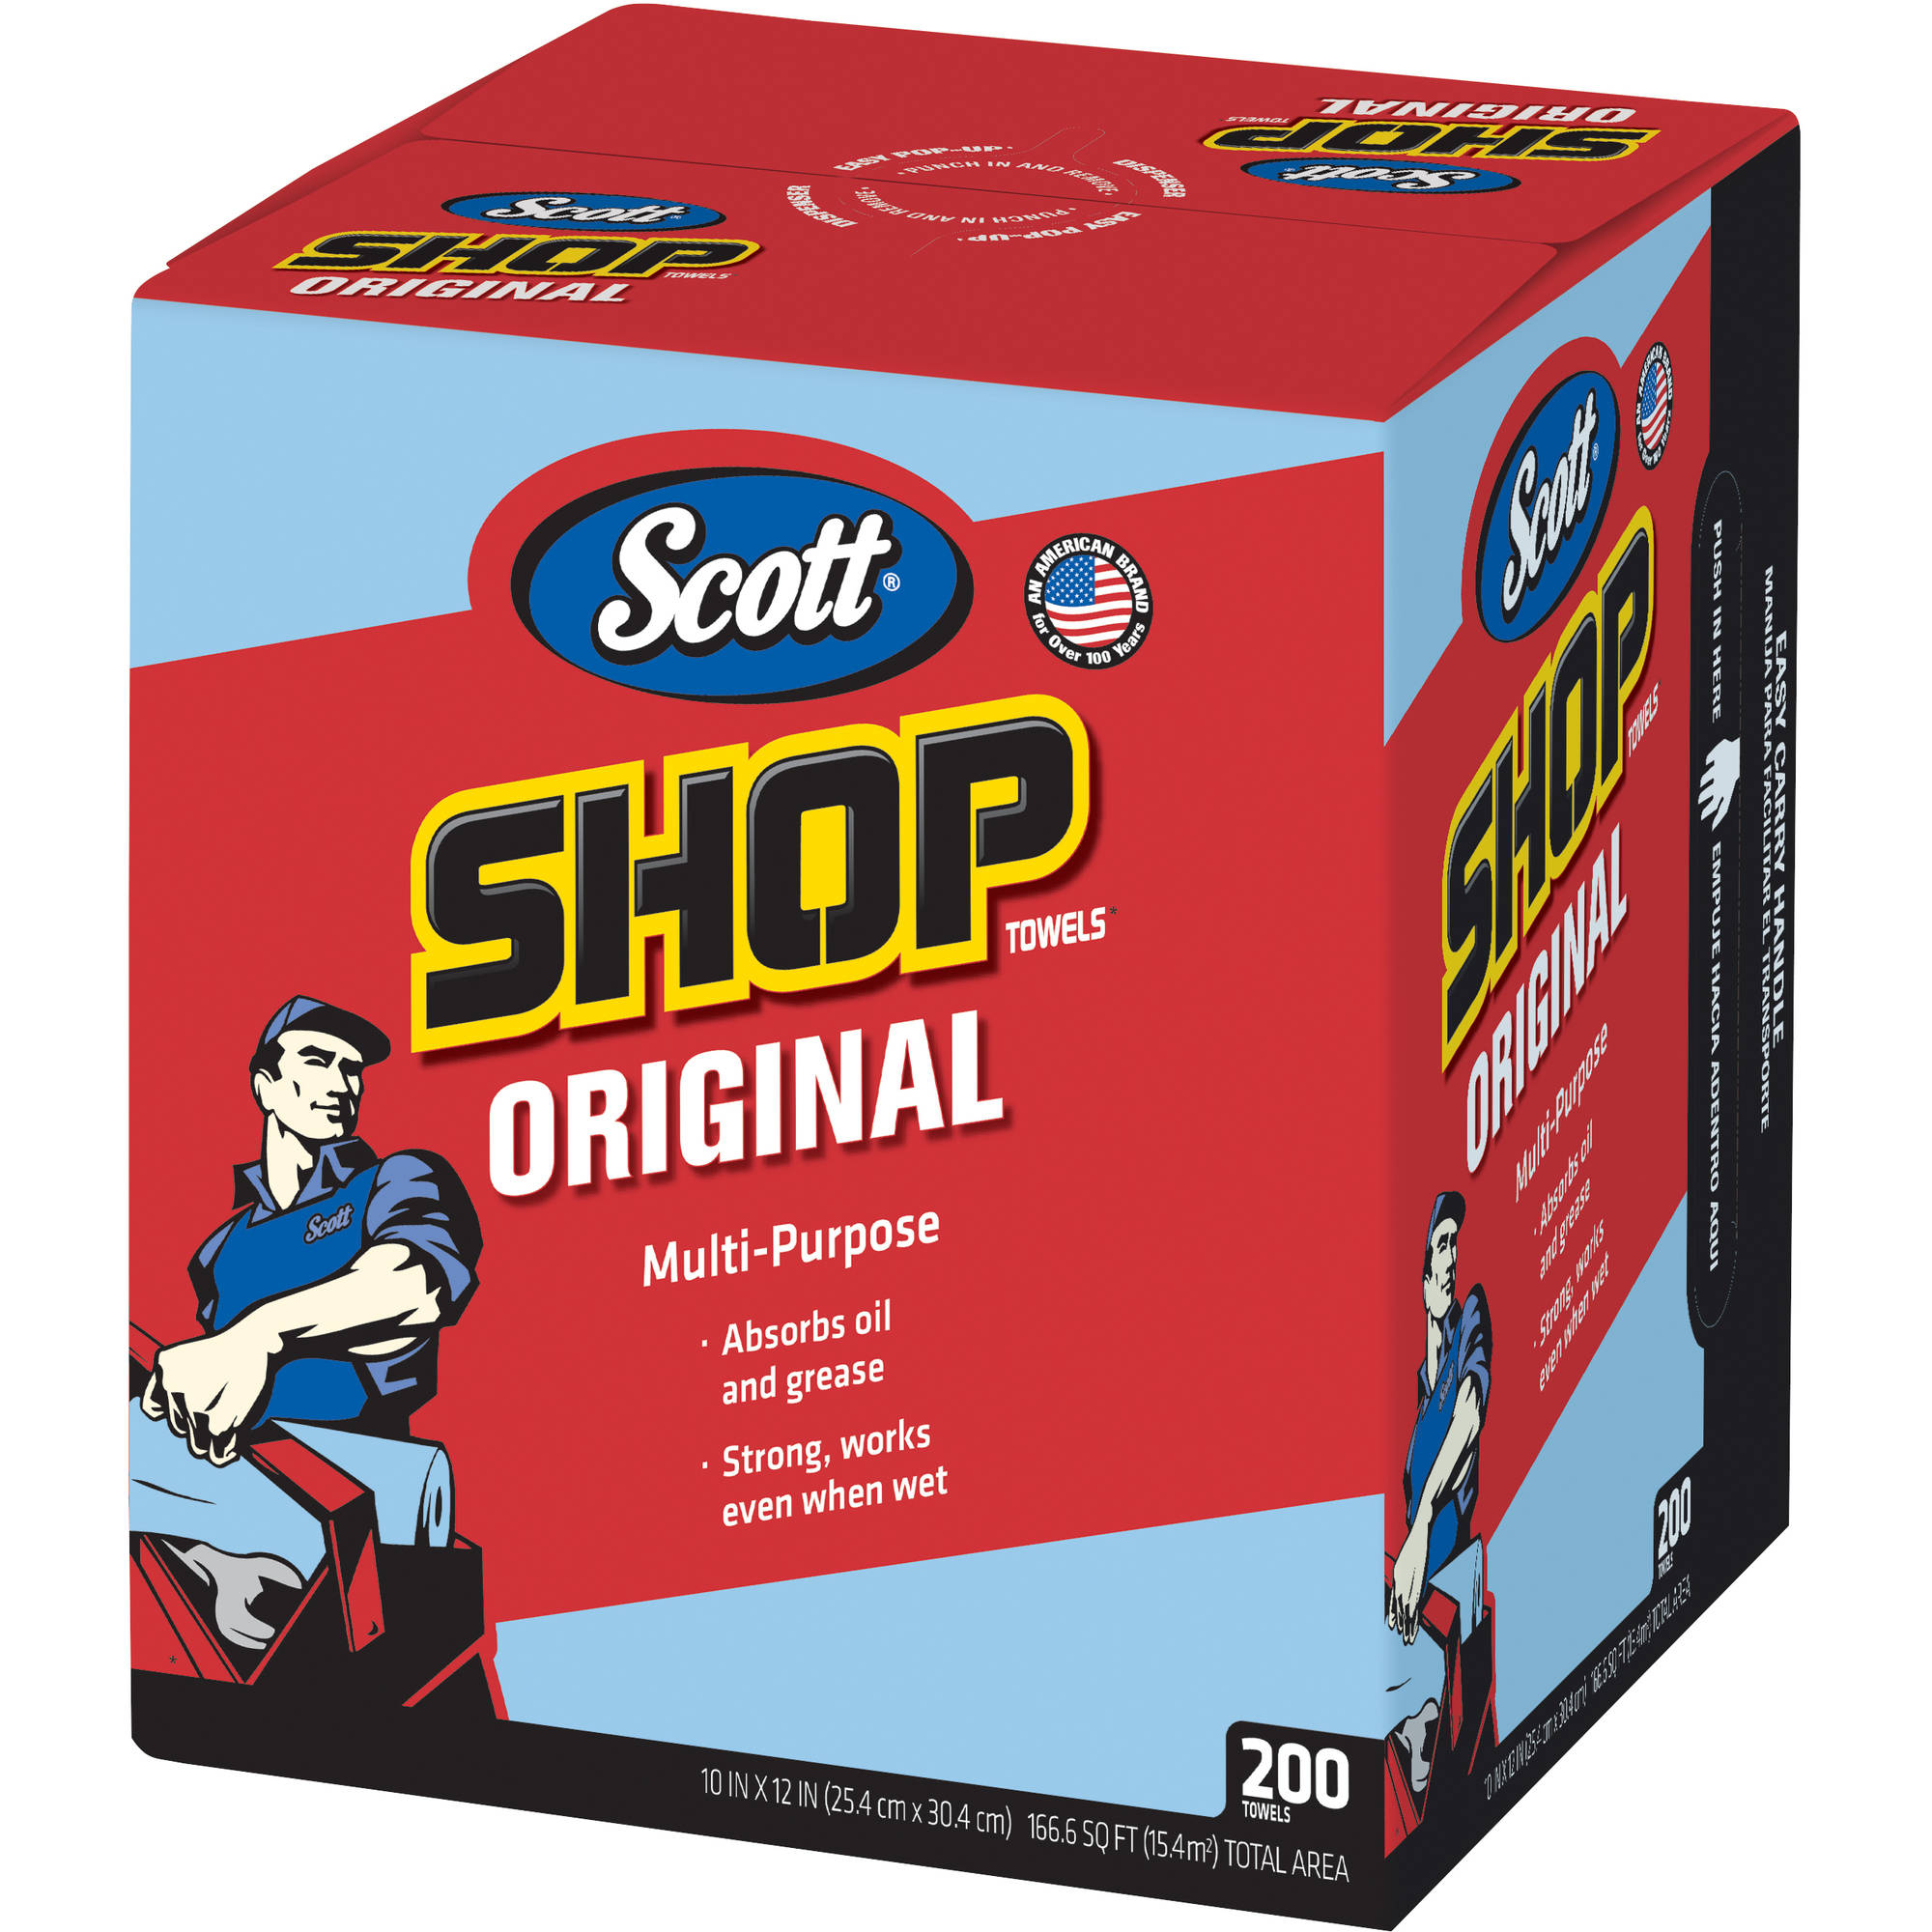 Scott Shop Towels in a Box, 200 Count